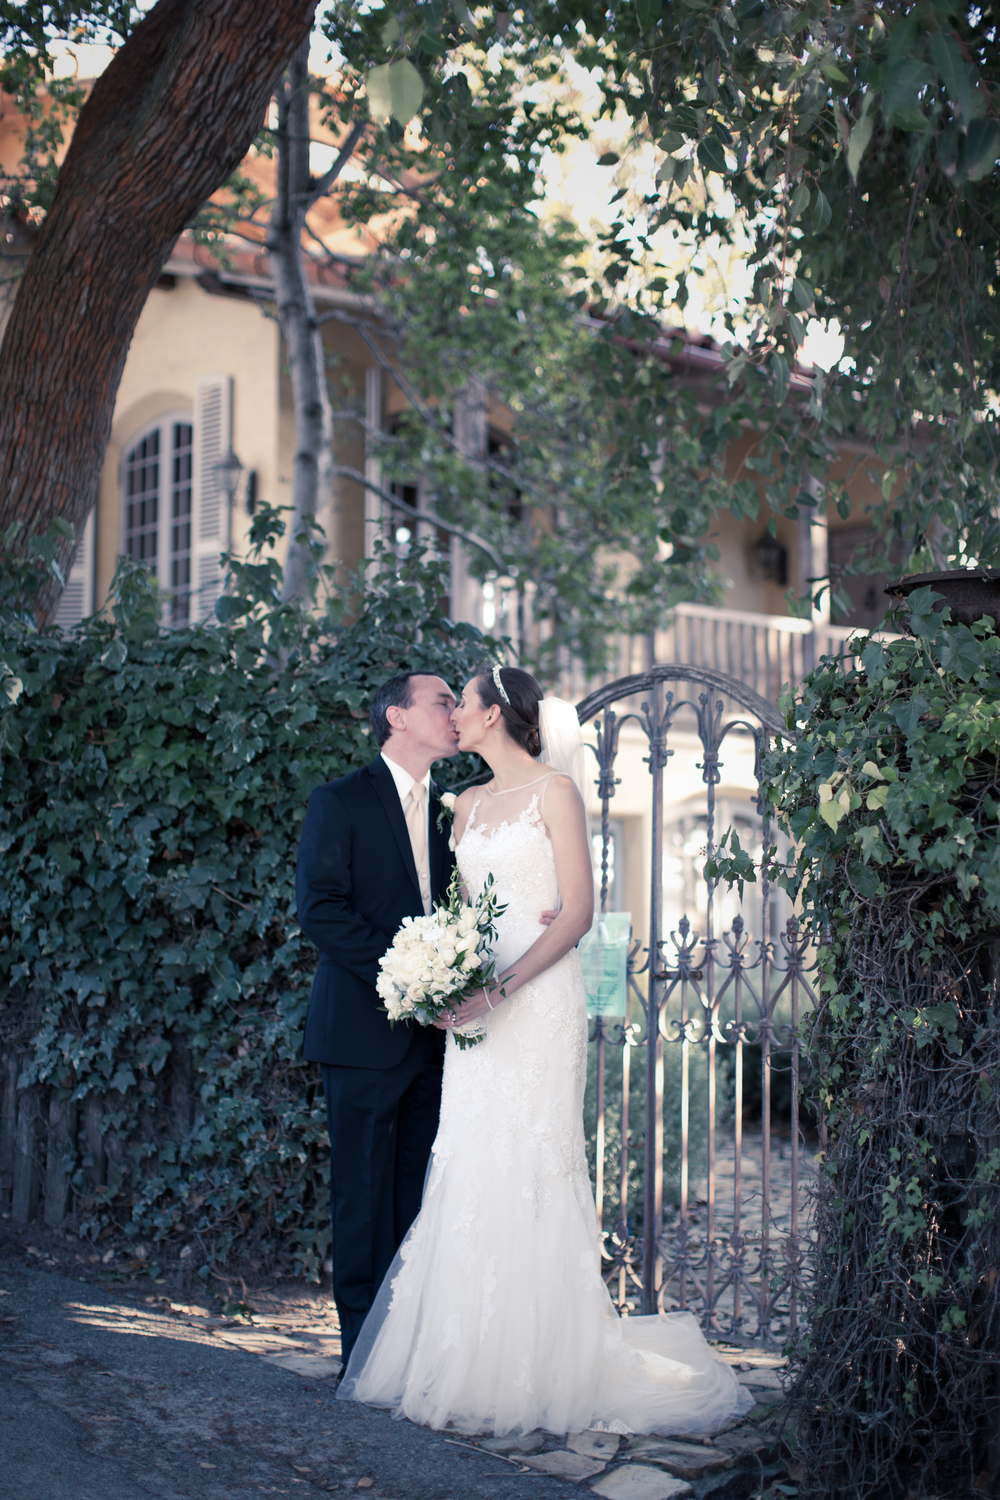 Laura & Matt - Married-415.jpg